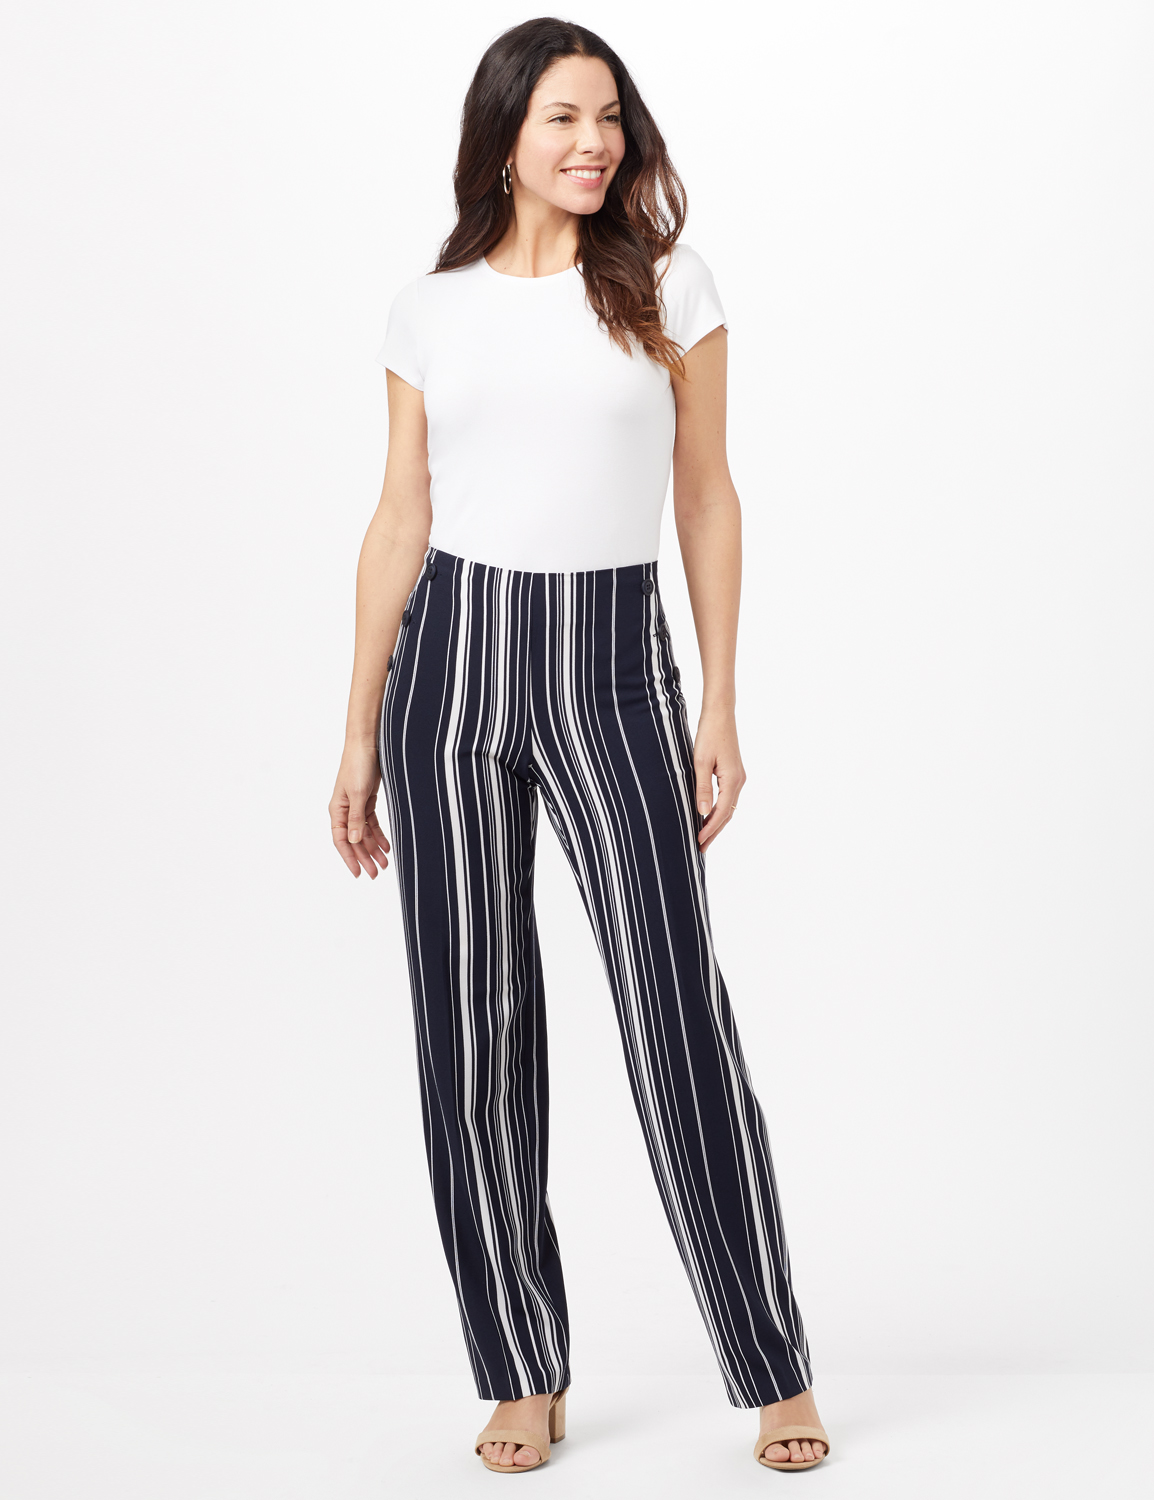 Sailor Stripe Pull-On Pants with Elastic Back - Navy/White - Front